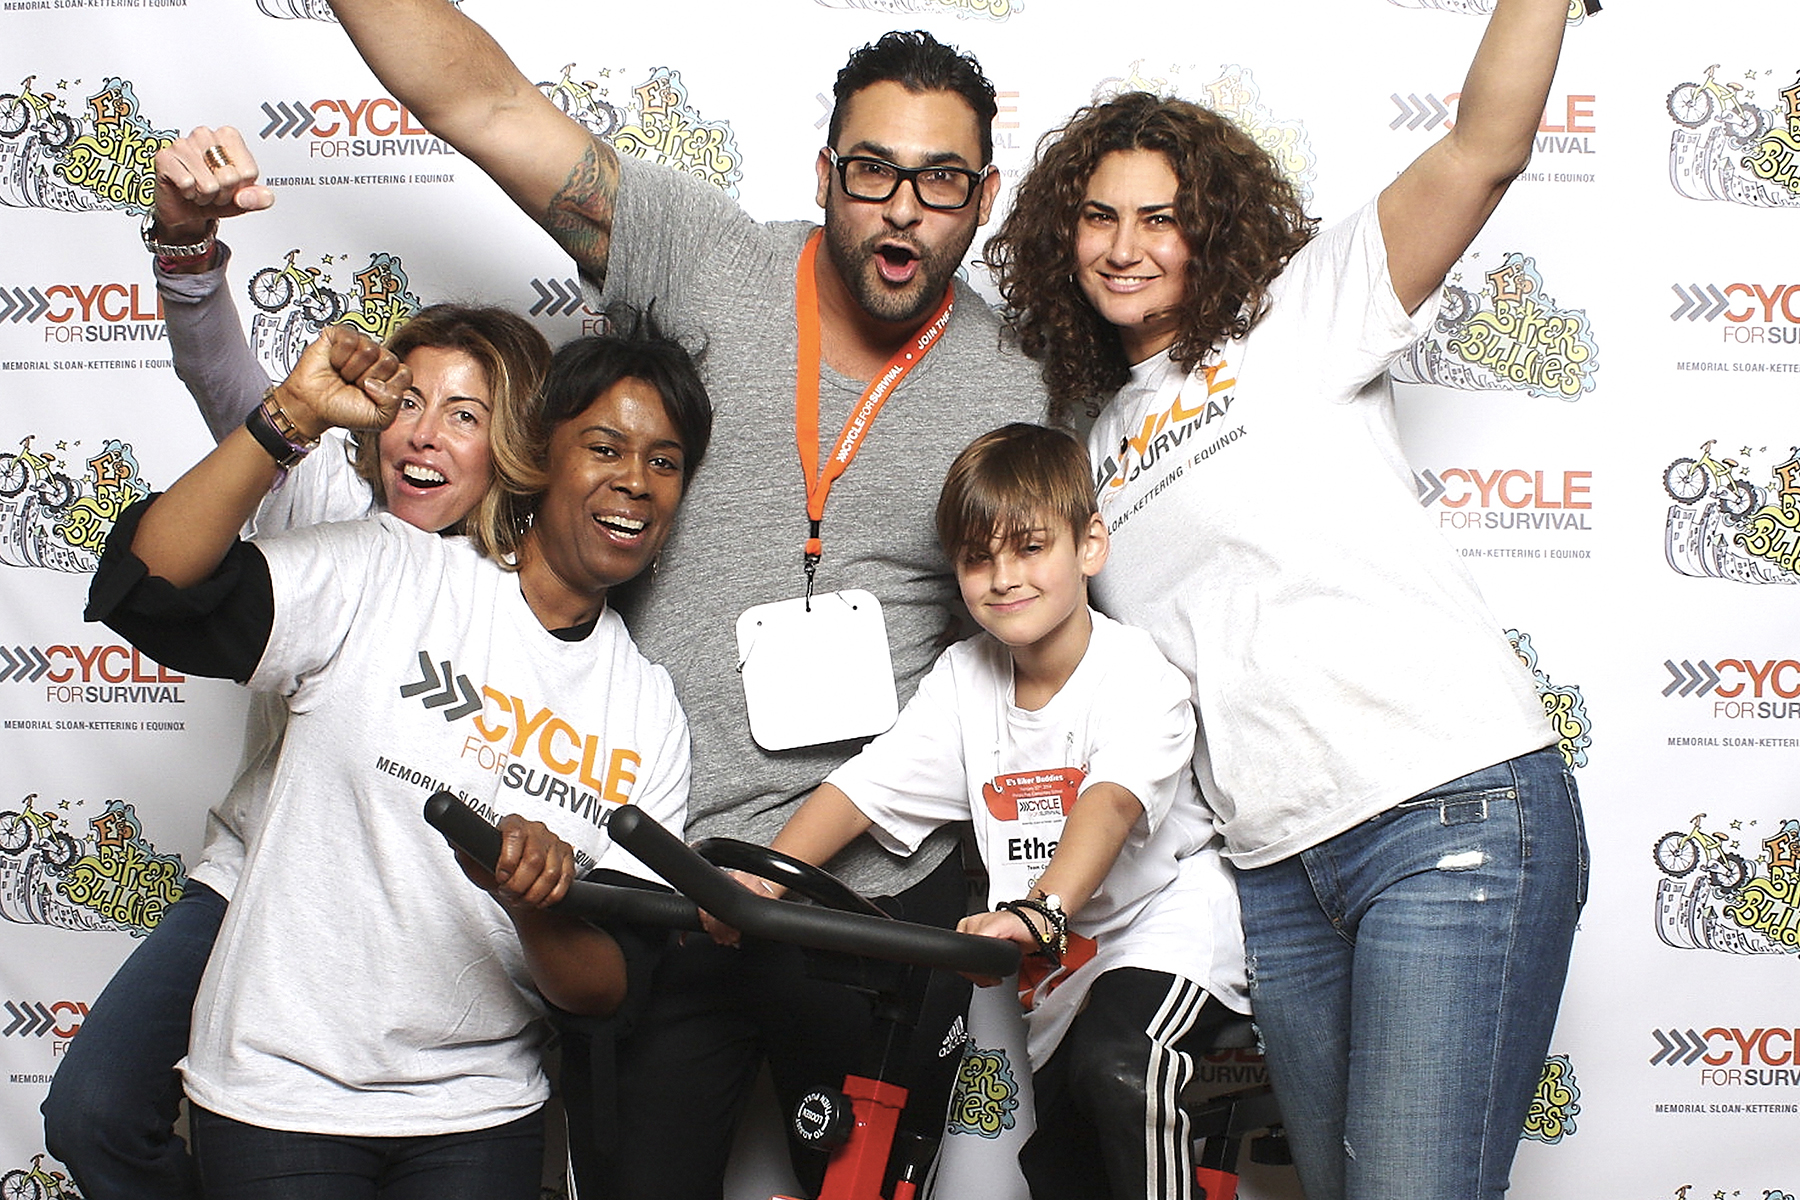 Cycle for Survival photo booth with Memorial Sloan Kettering and Equinox